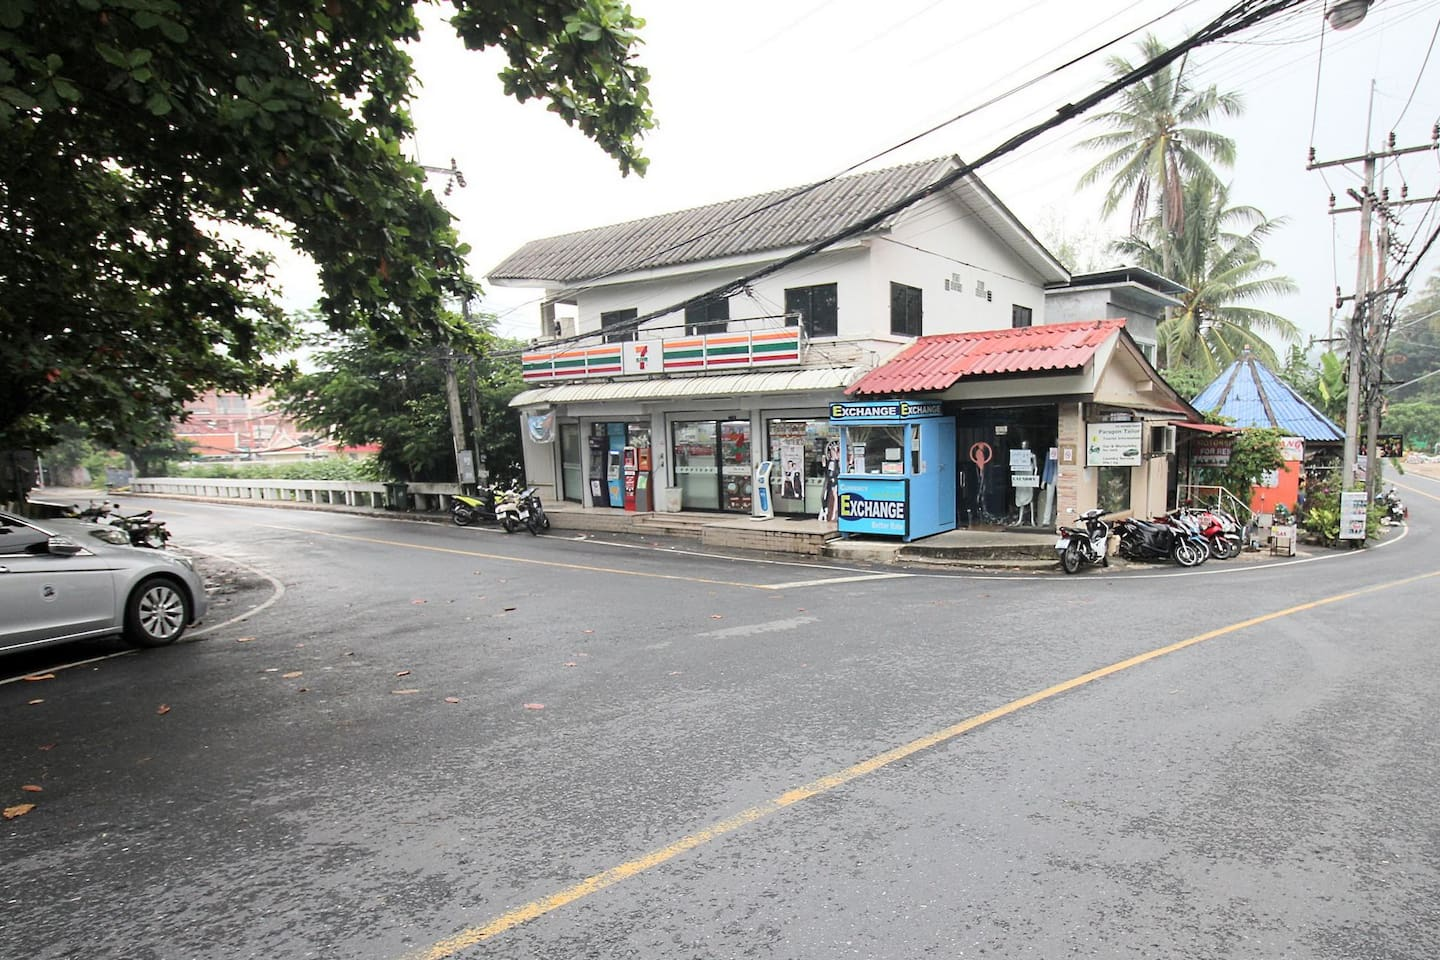 7-11 Convenient Store on the way to the beach. 300 meters away, just 4 minutes walk.